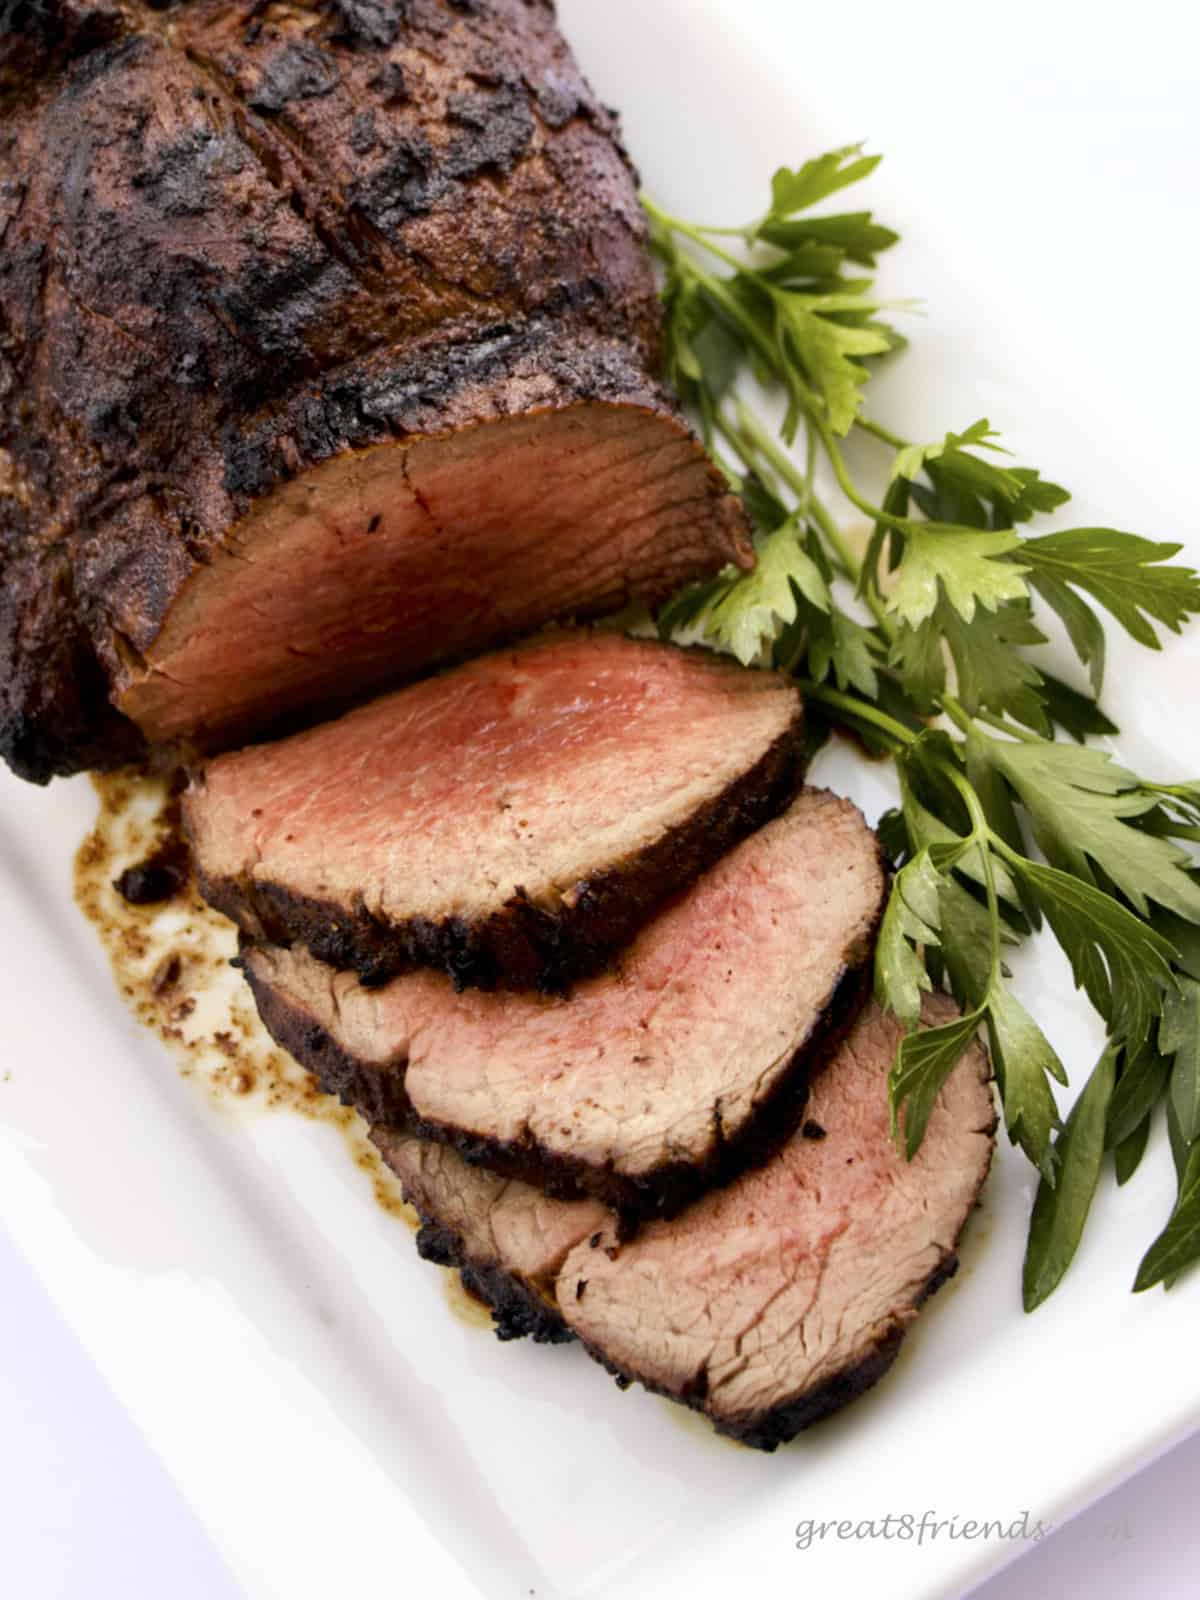 A Grilled Beef Tenderloin with 3 slices fanned out surrounded by parsley.